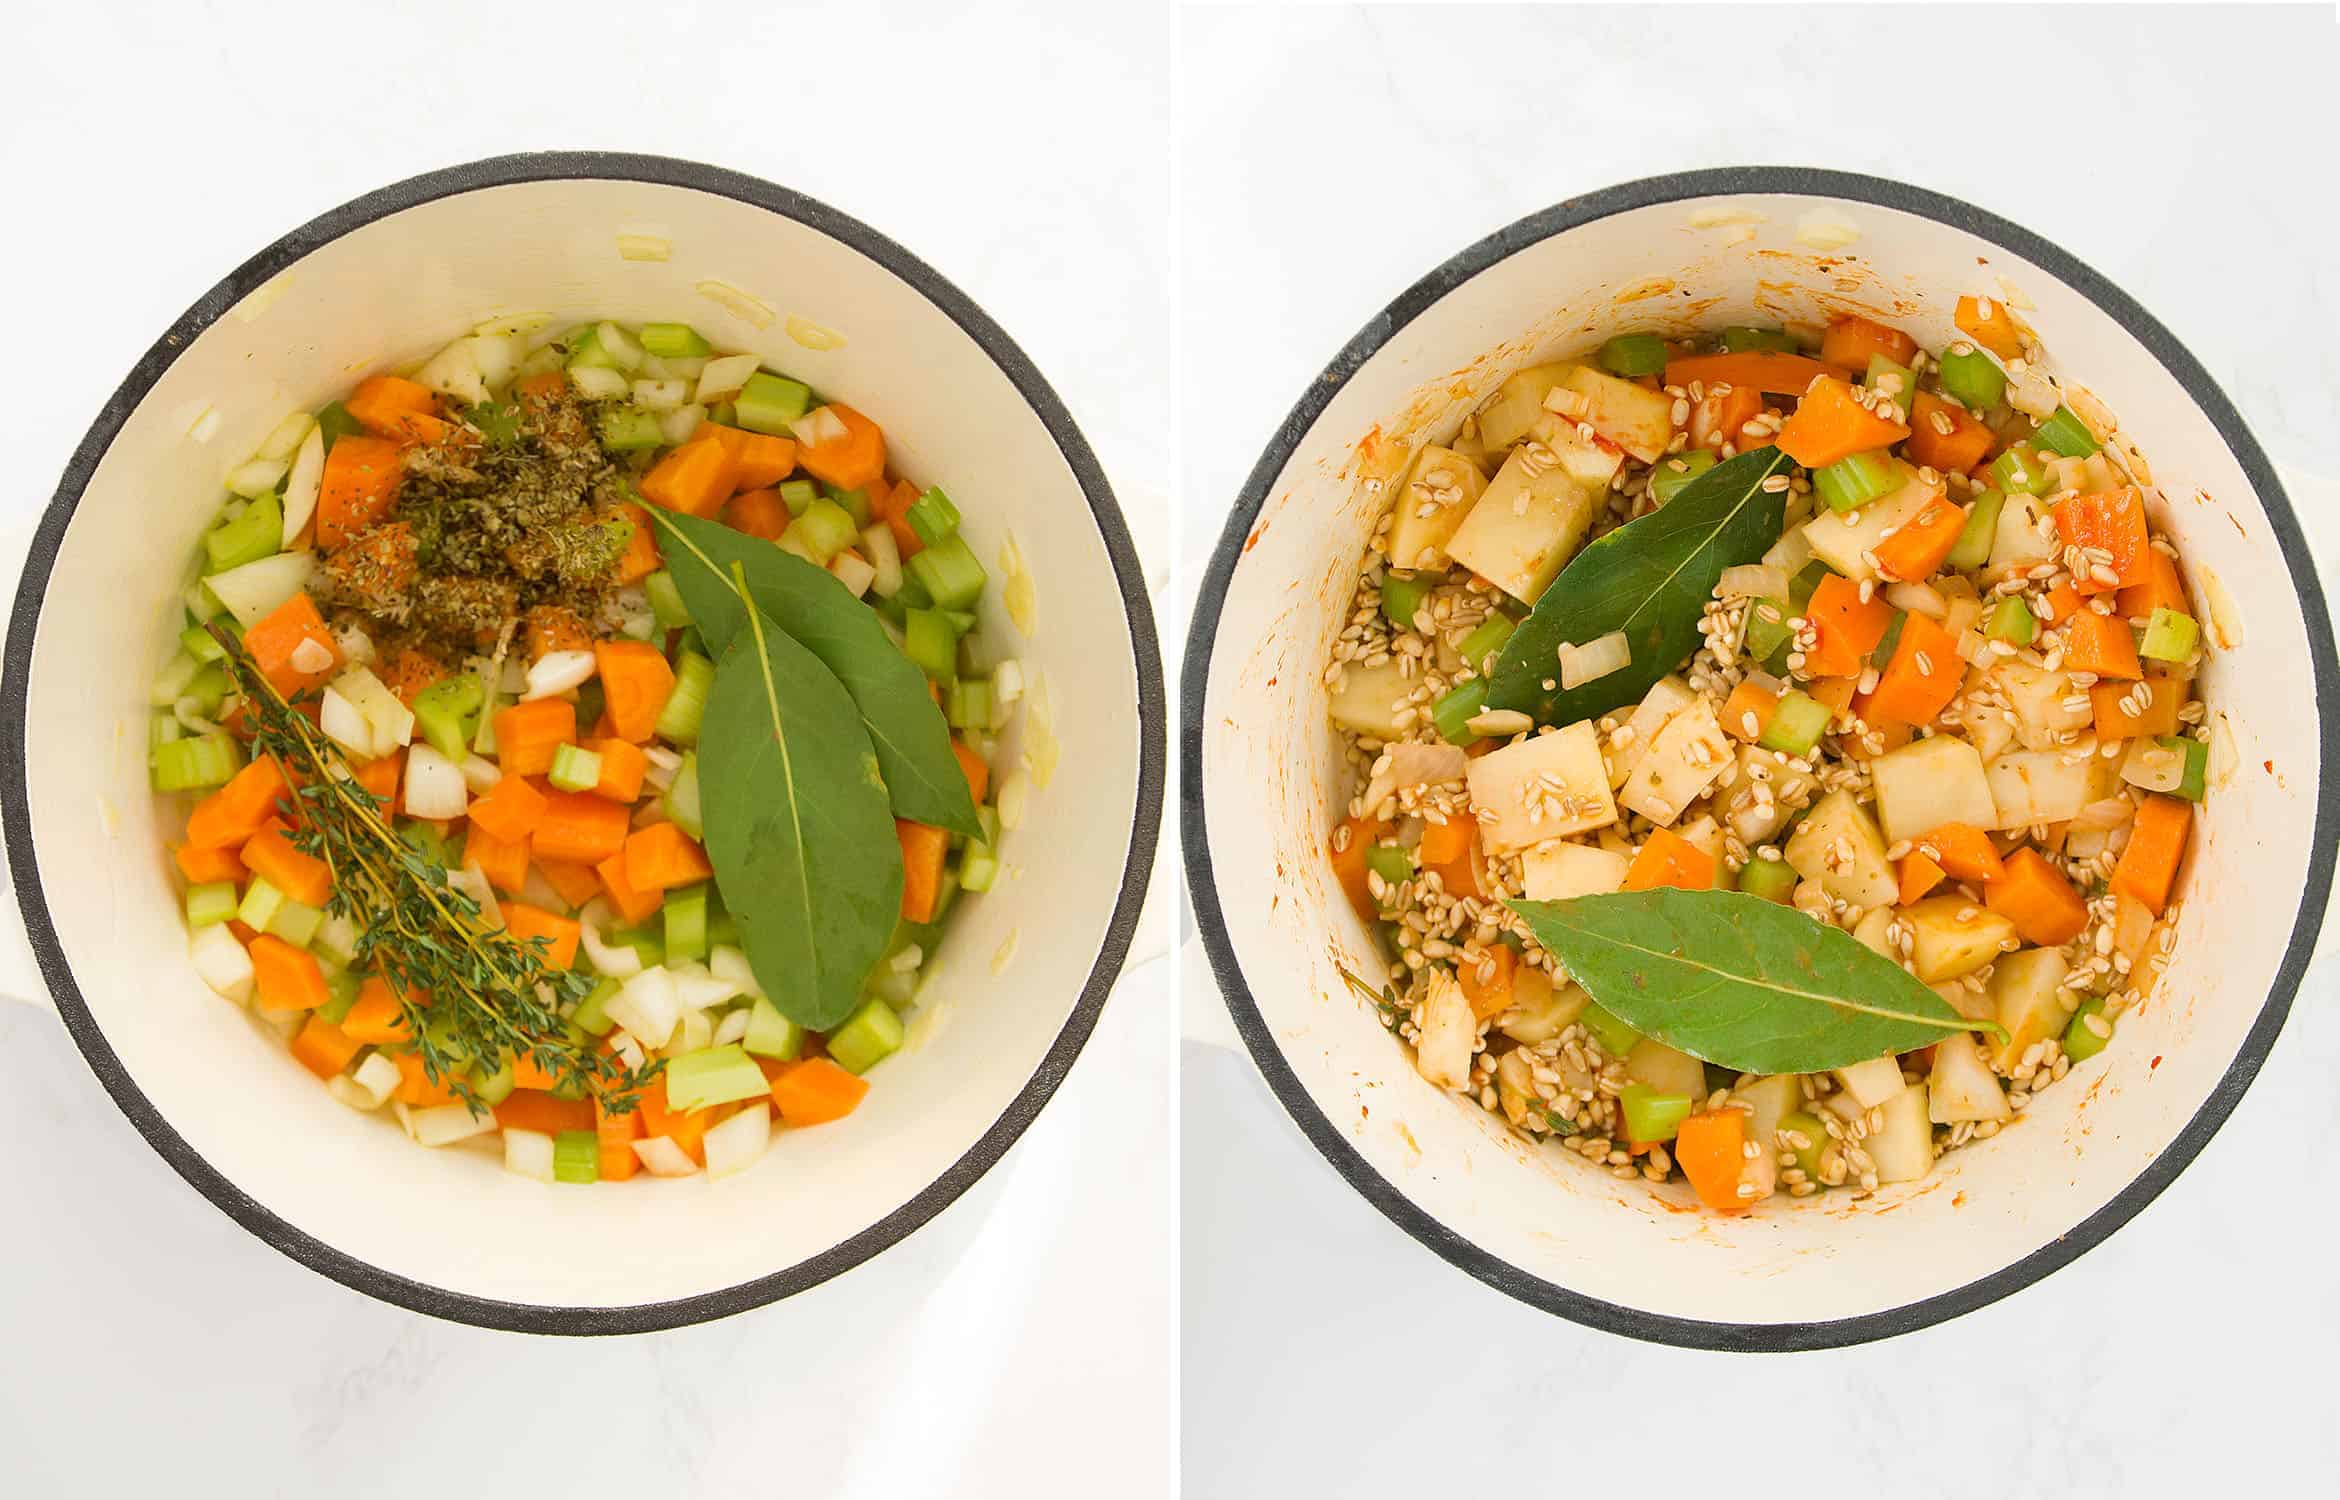 The first image shows diced vegetables and herbs in pot. The second one shows the addition of barley.